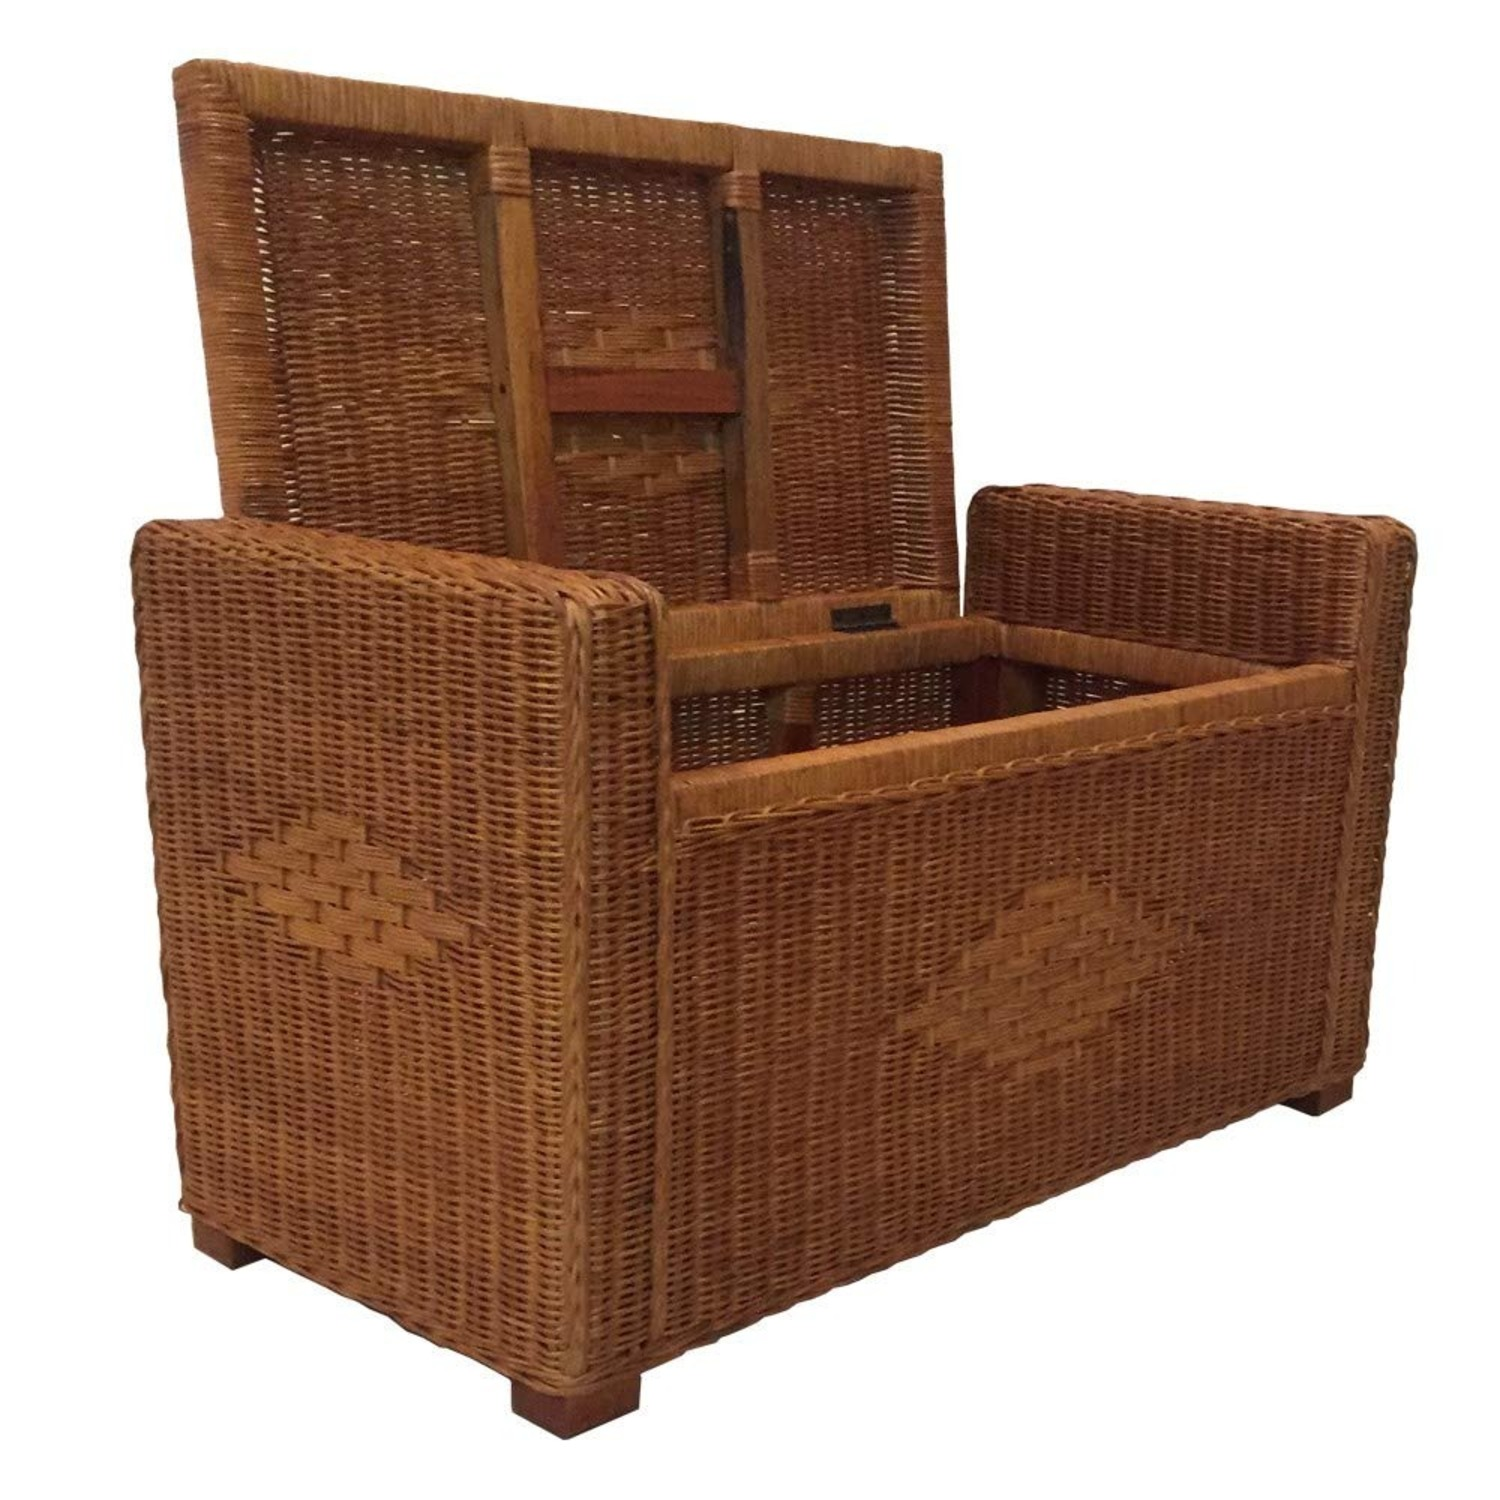 Adam Light Brown Rattan Chest Storage Ottoman - image-3